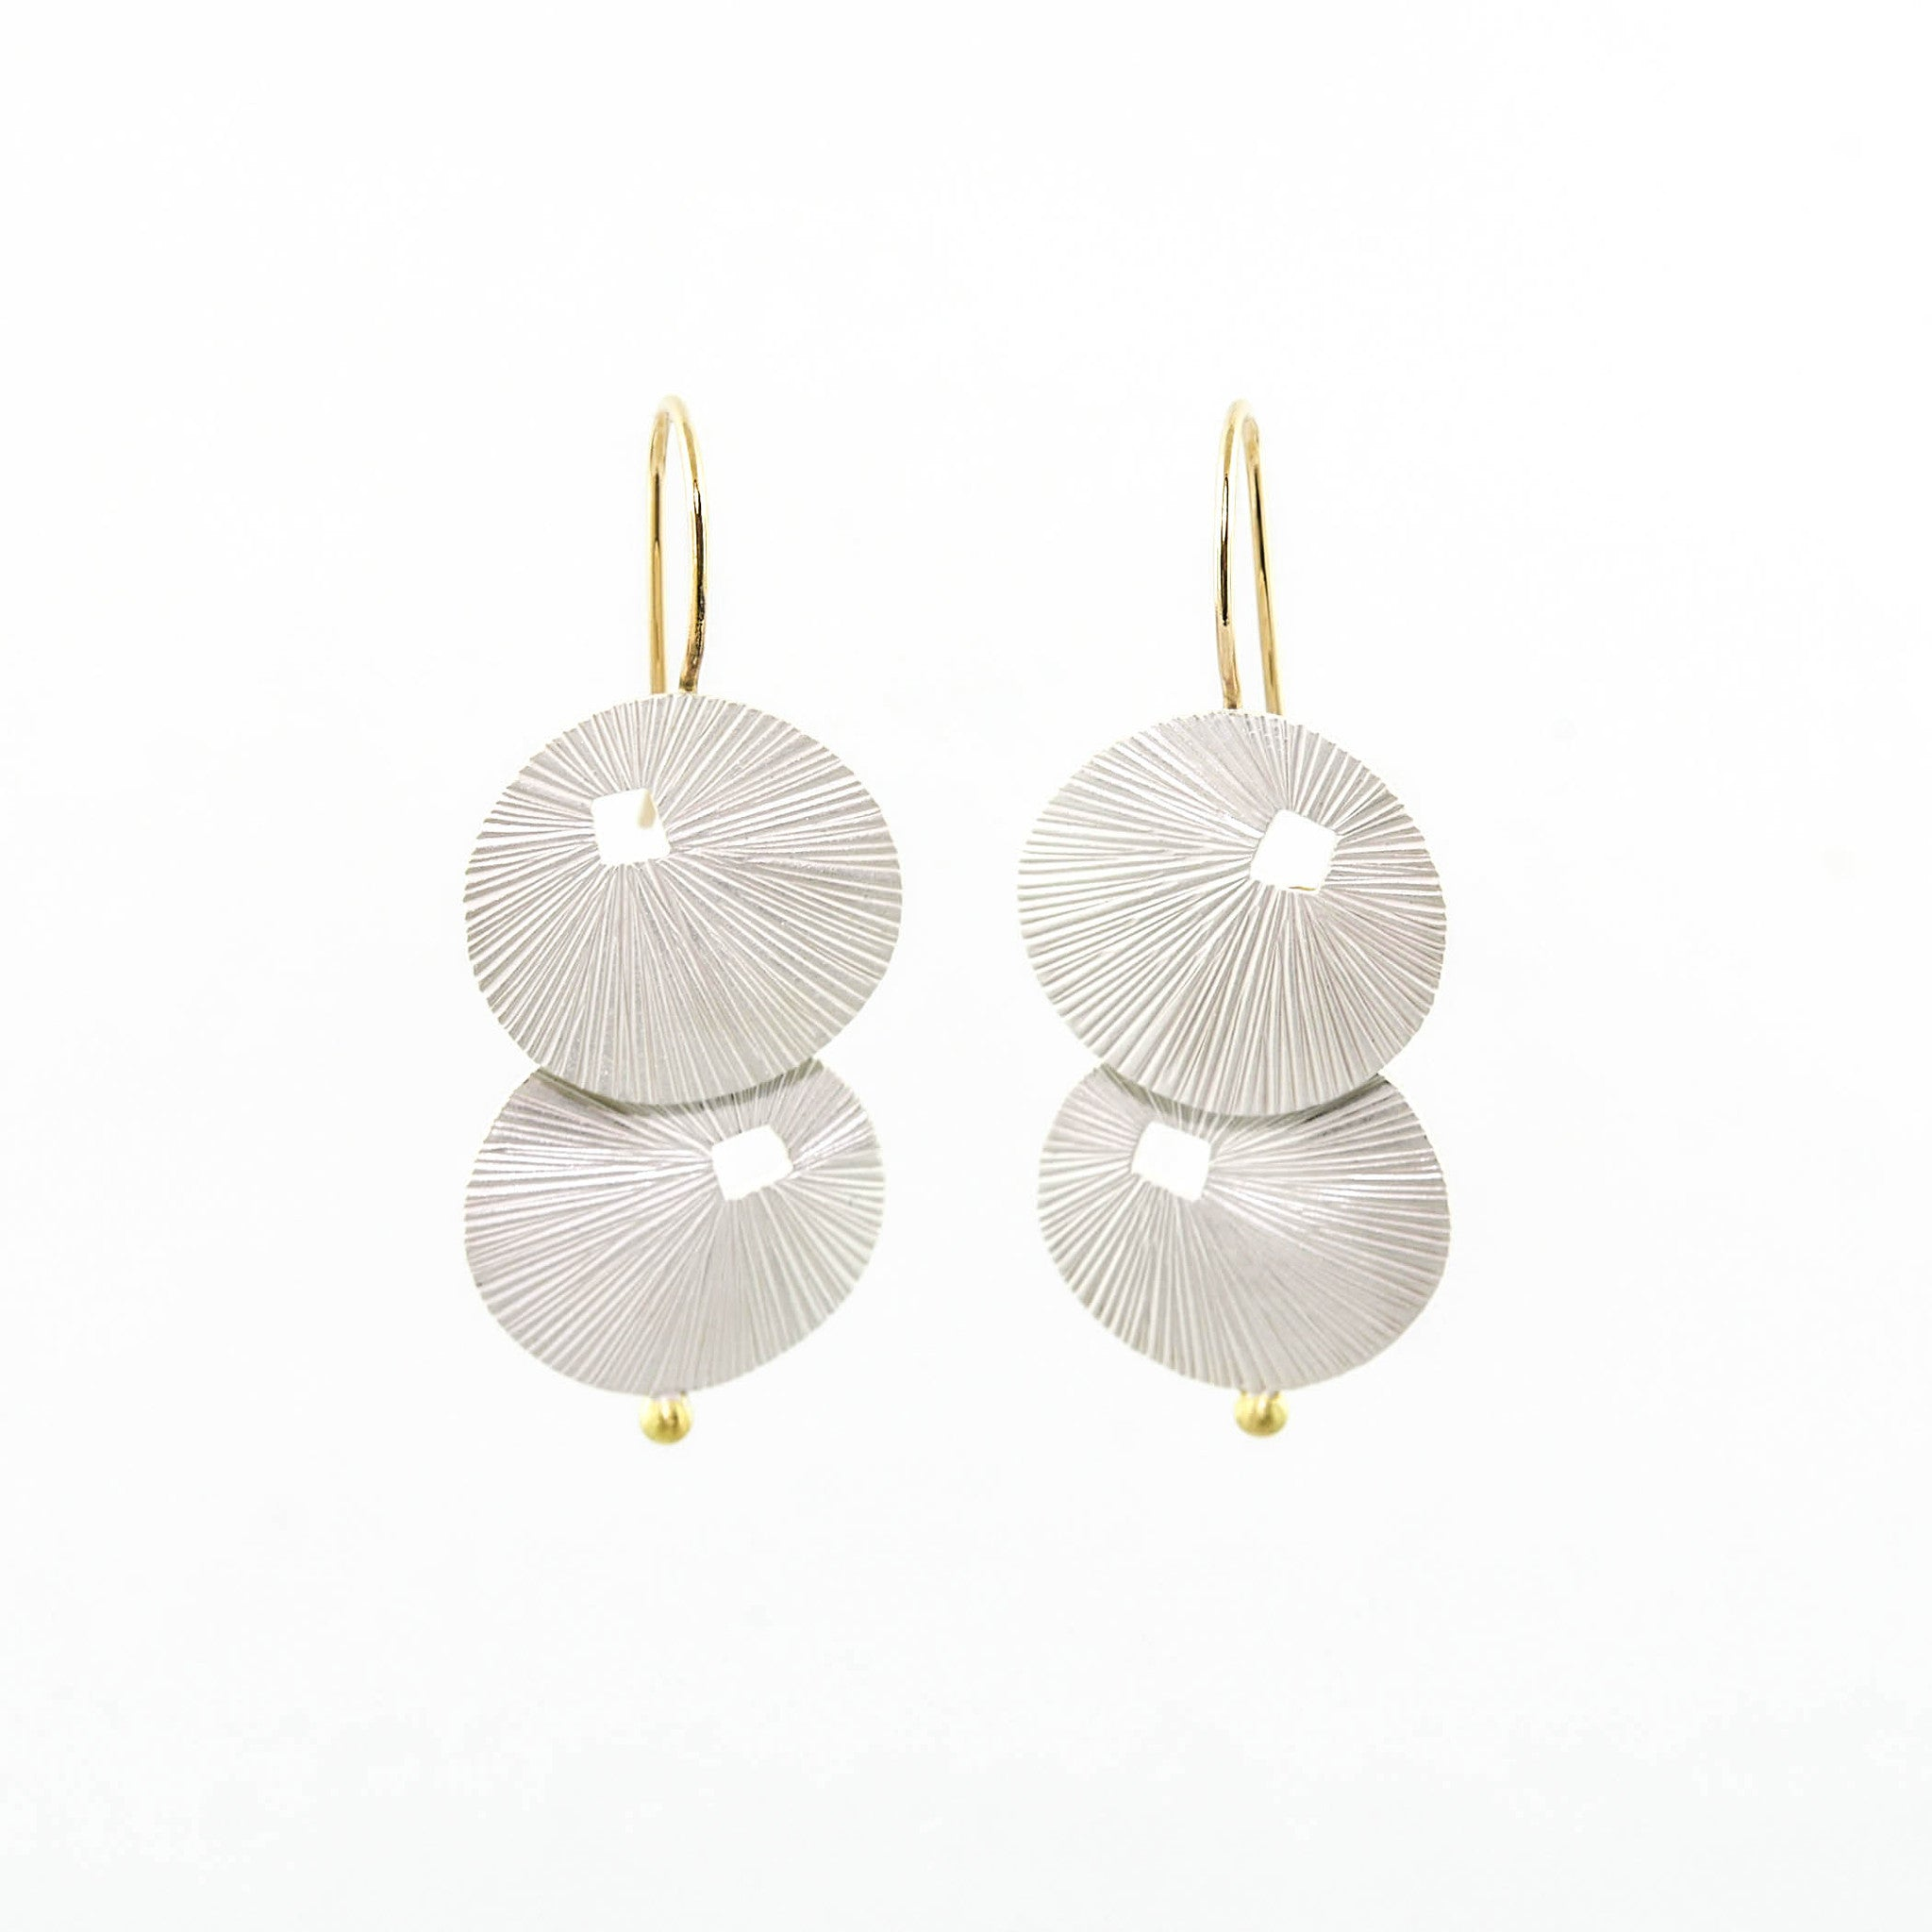 zirconia jewelry bright product earrings stud on cubic sterling shipping over overstock free orders watches silver orbit